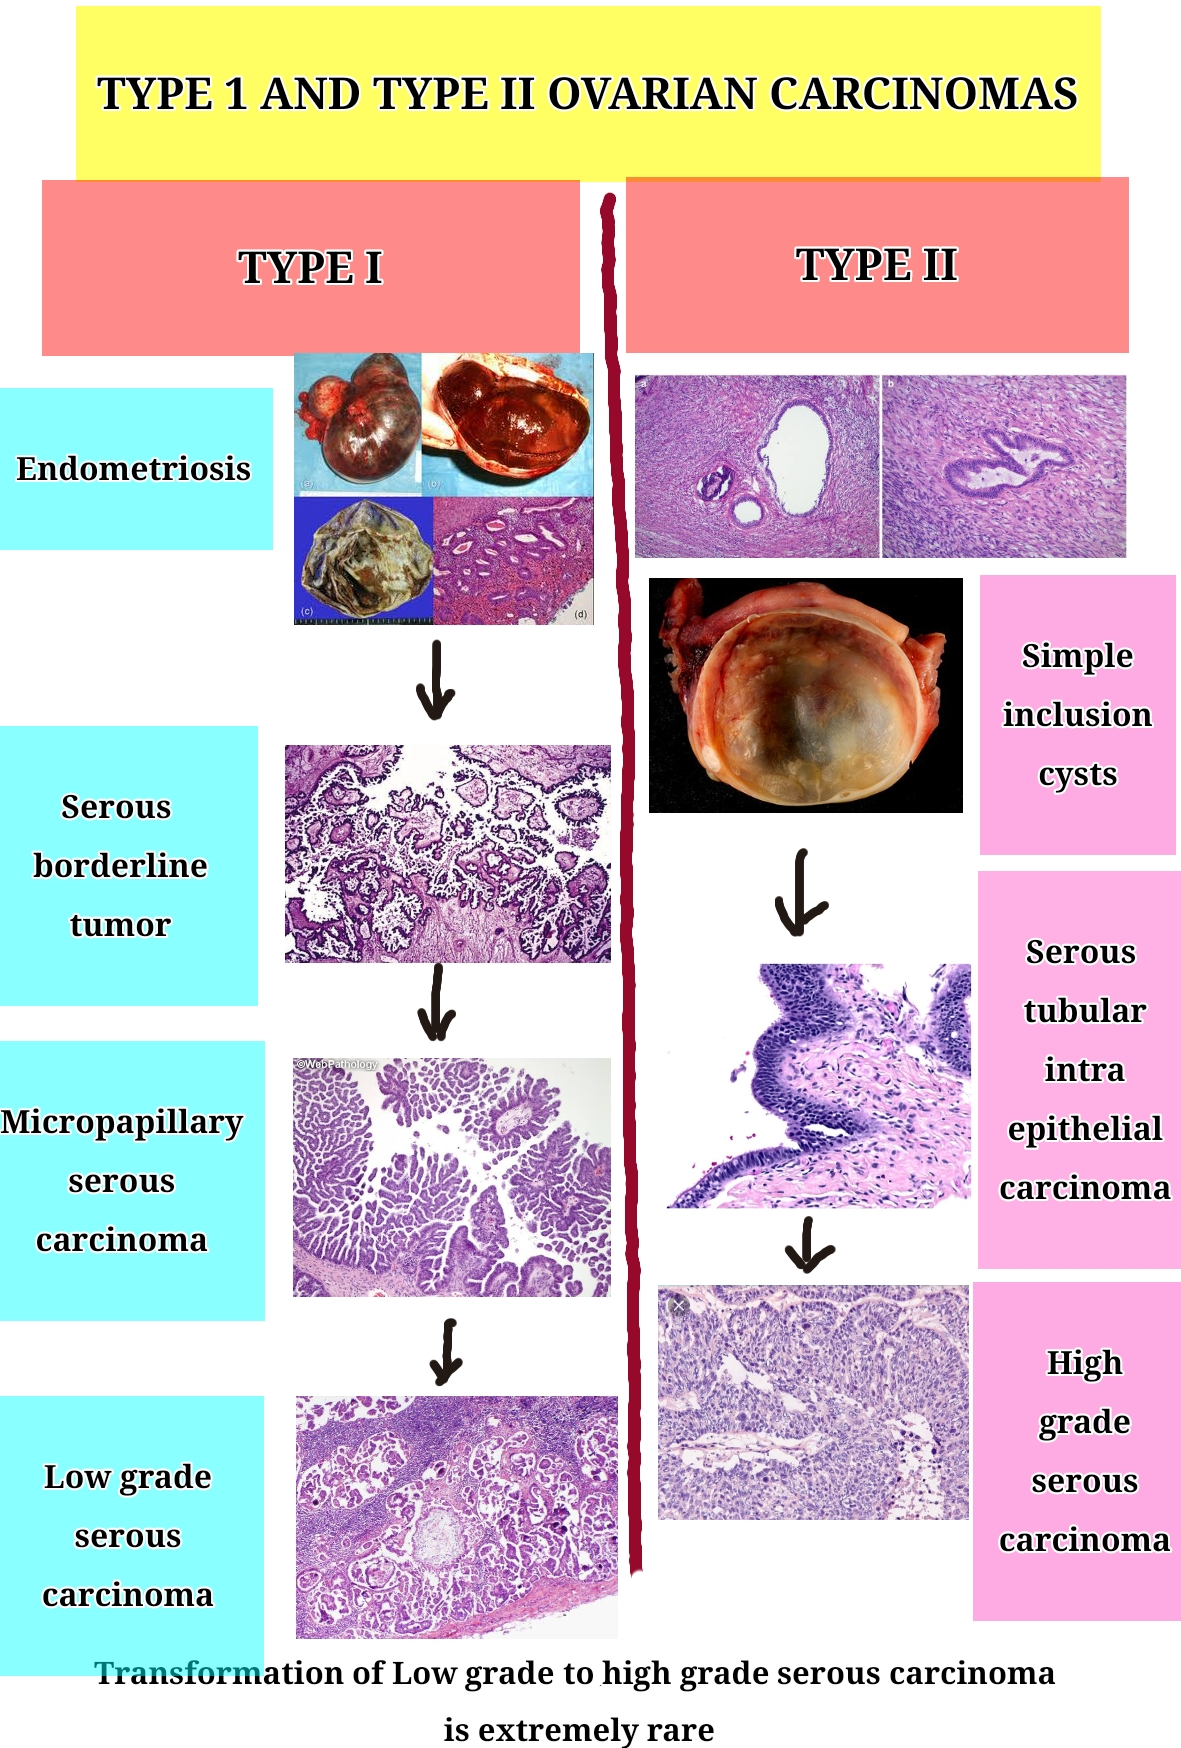 Type 1 and 2 ovarian cancers. Type 1 arises from a background of Endometriosis, then gives rise to serous borderline tumors and micropapillary serous borderline followed by low grade carcinoma. Type 2 aroses from a background of simple inclusion cysts, then gives rise to STIC ( serous tubular Intraepithel carcinoma) followed by high grade serous carcinoma. It is important to note that low grade carcinomas in ovary very rarely transform into high grade.